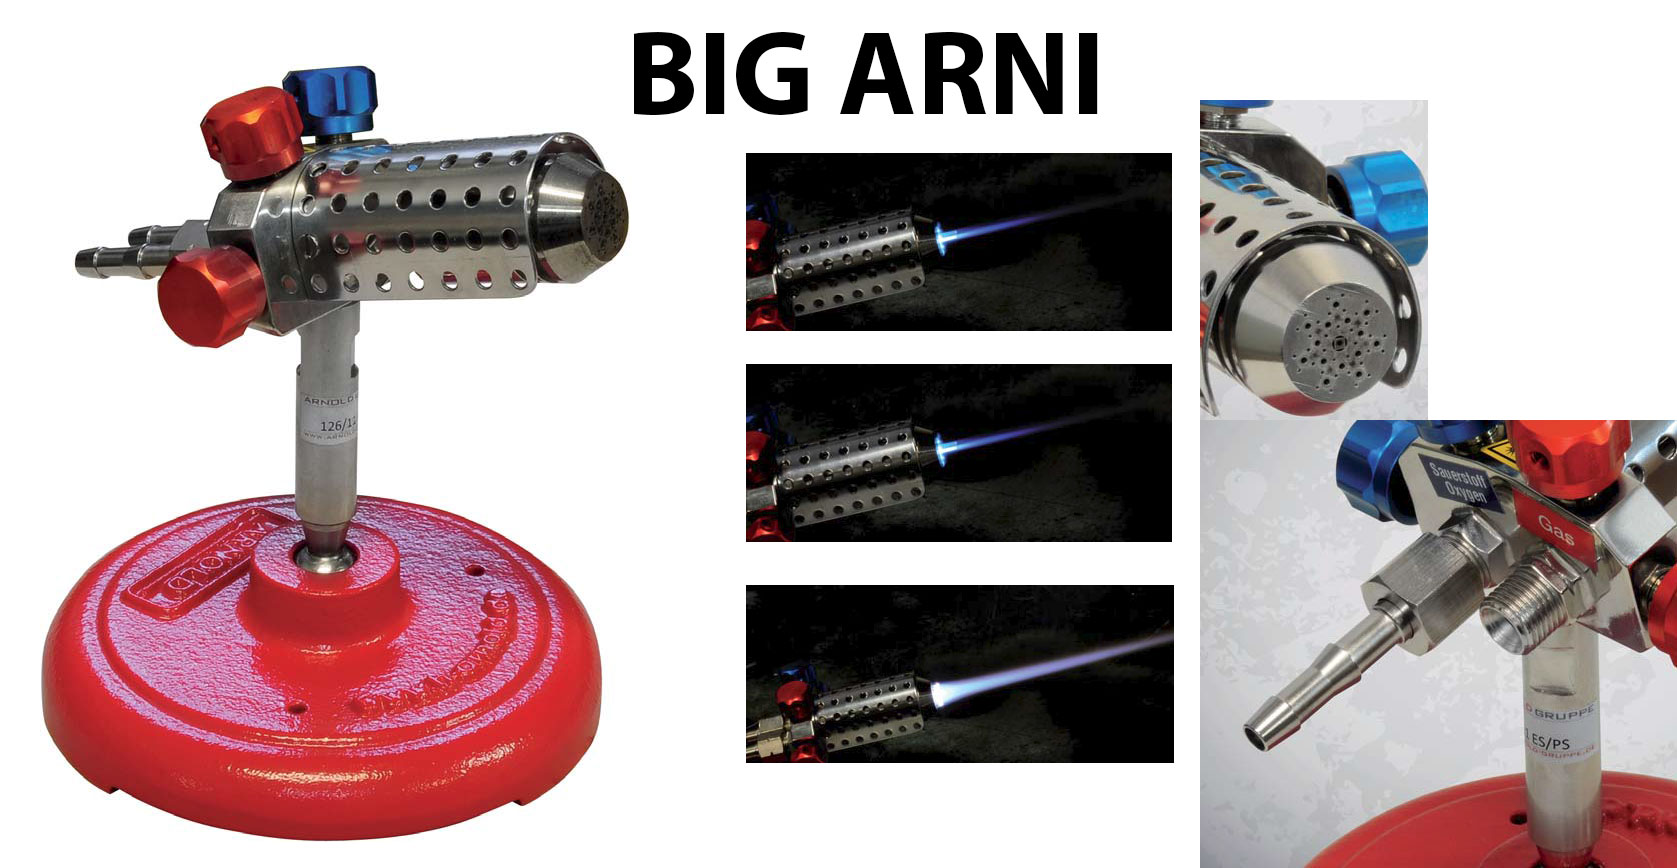 Herbert Arnold Big Arni Torch